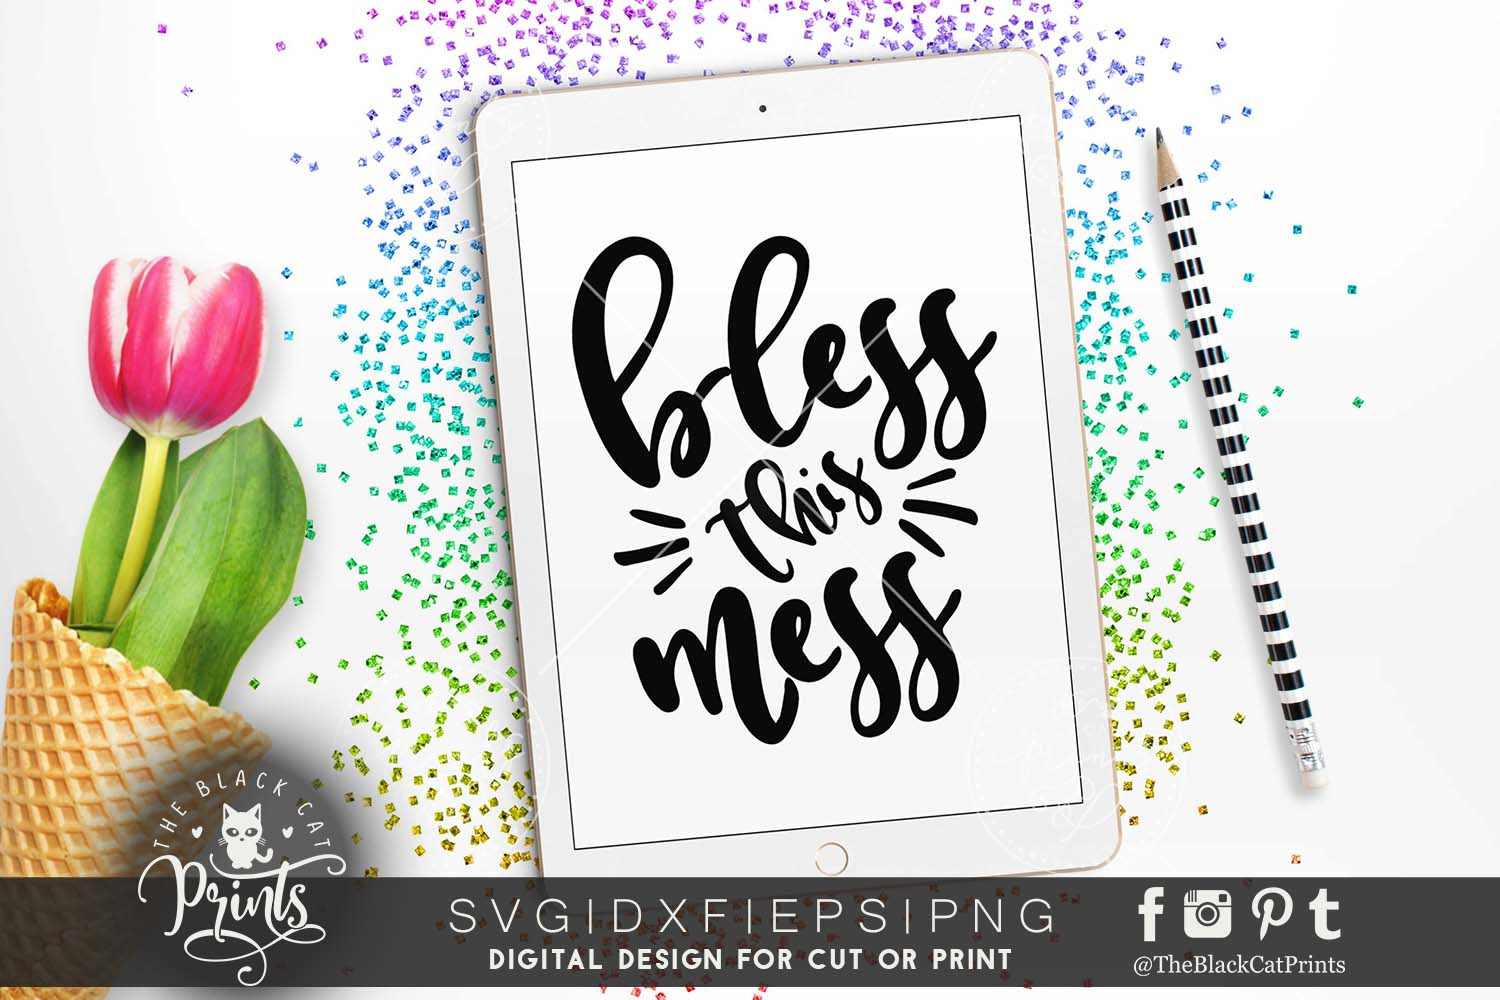 Bless this mess SVG PNG EPS DXF example image 5